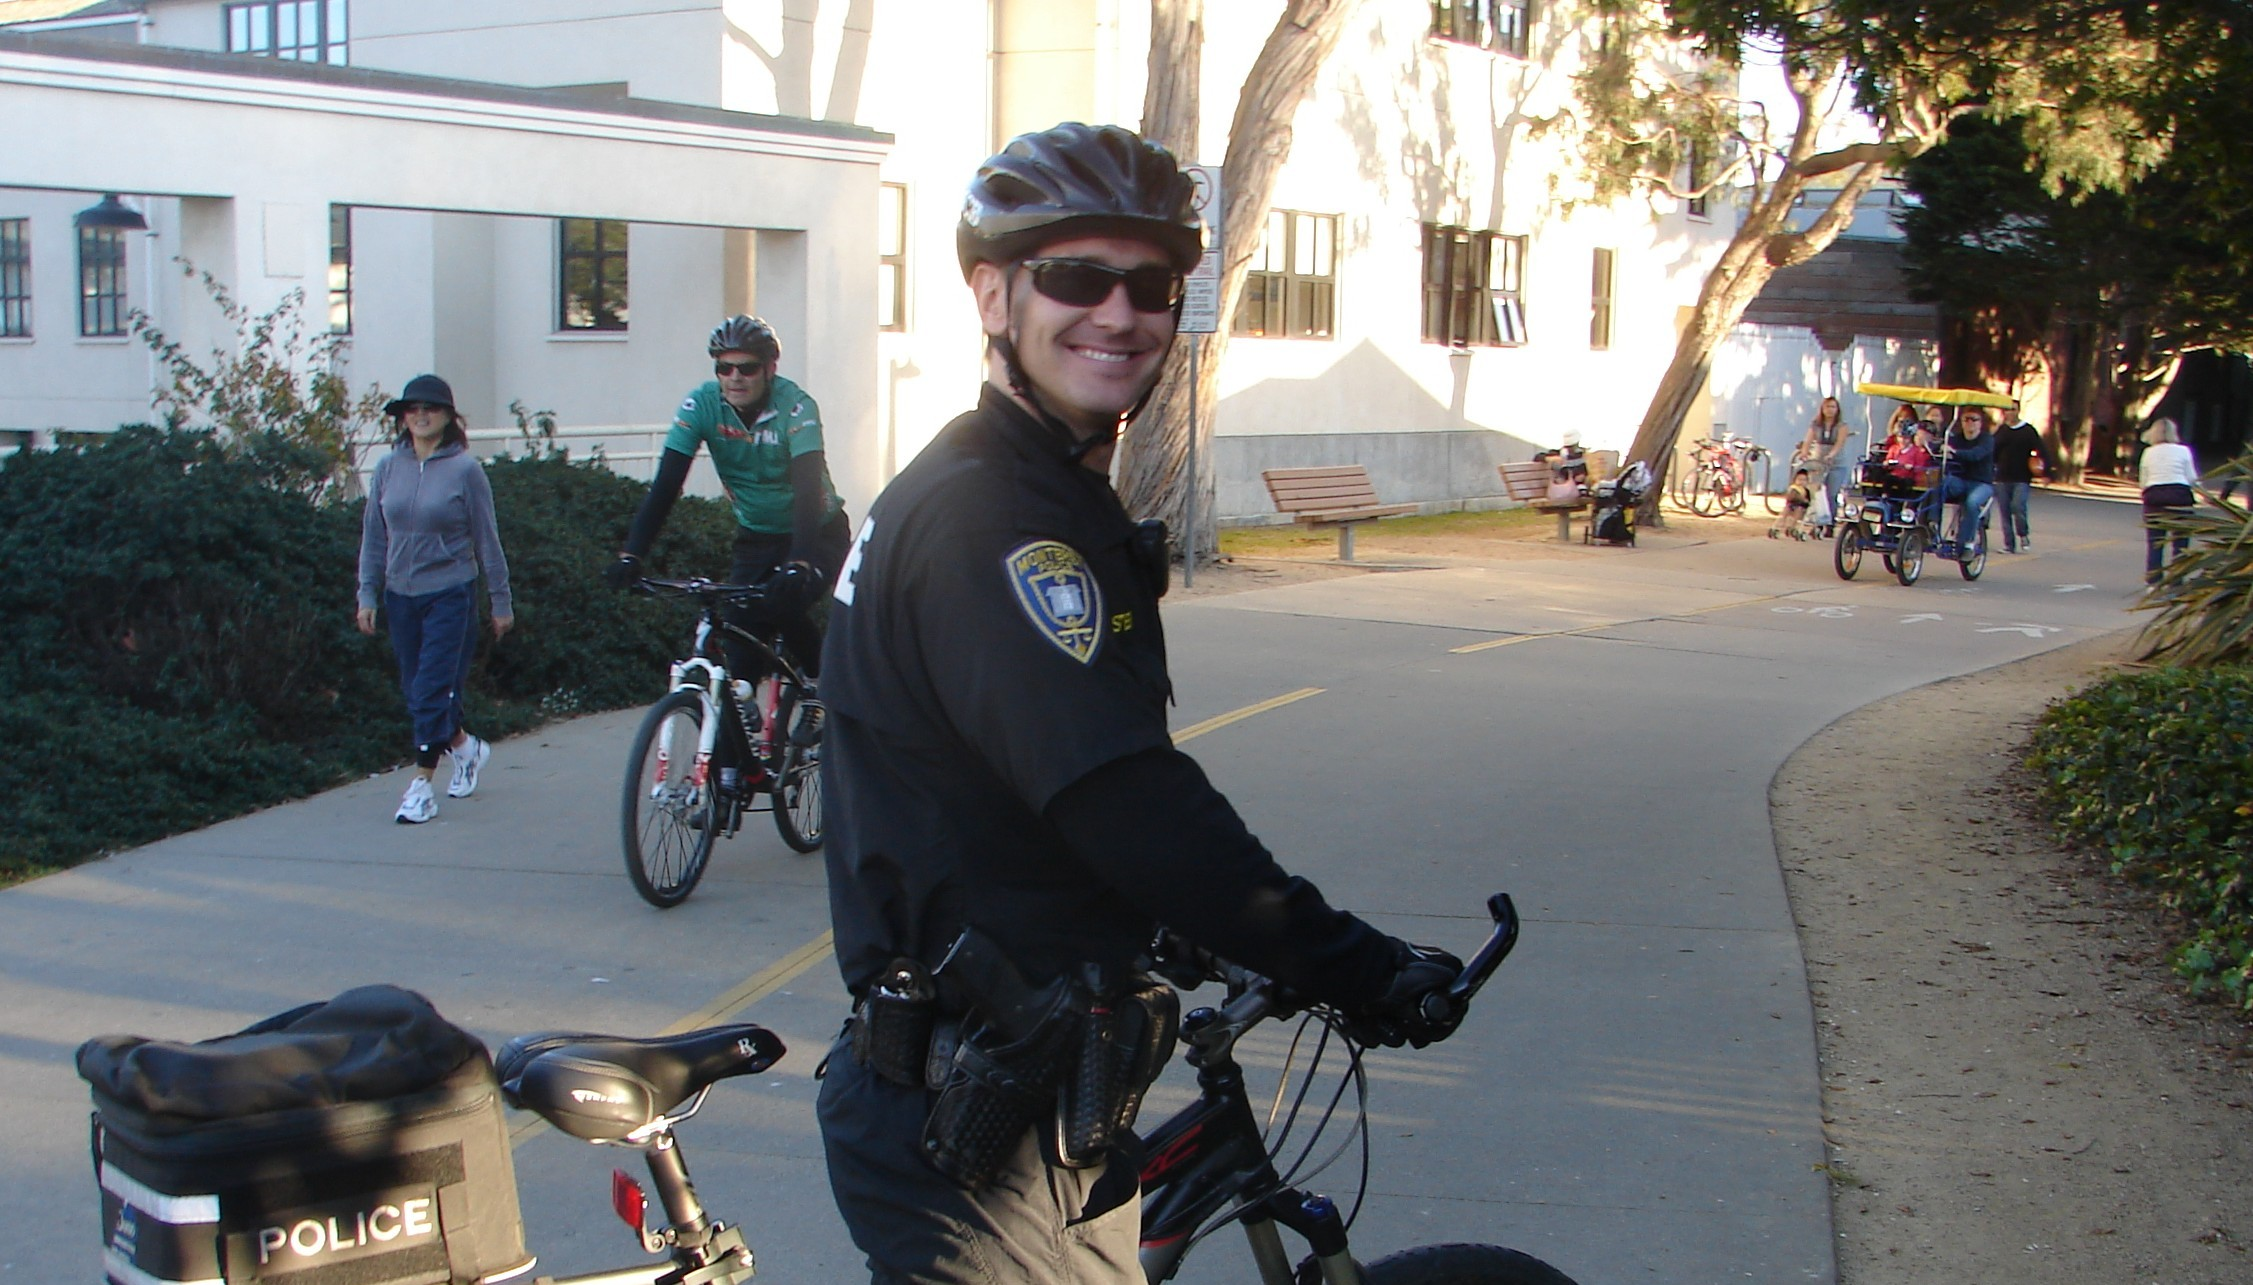 See them in action: Monterey Police Department Bicycle Patrol